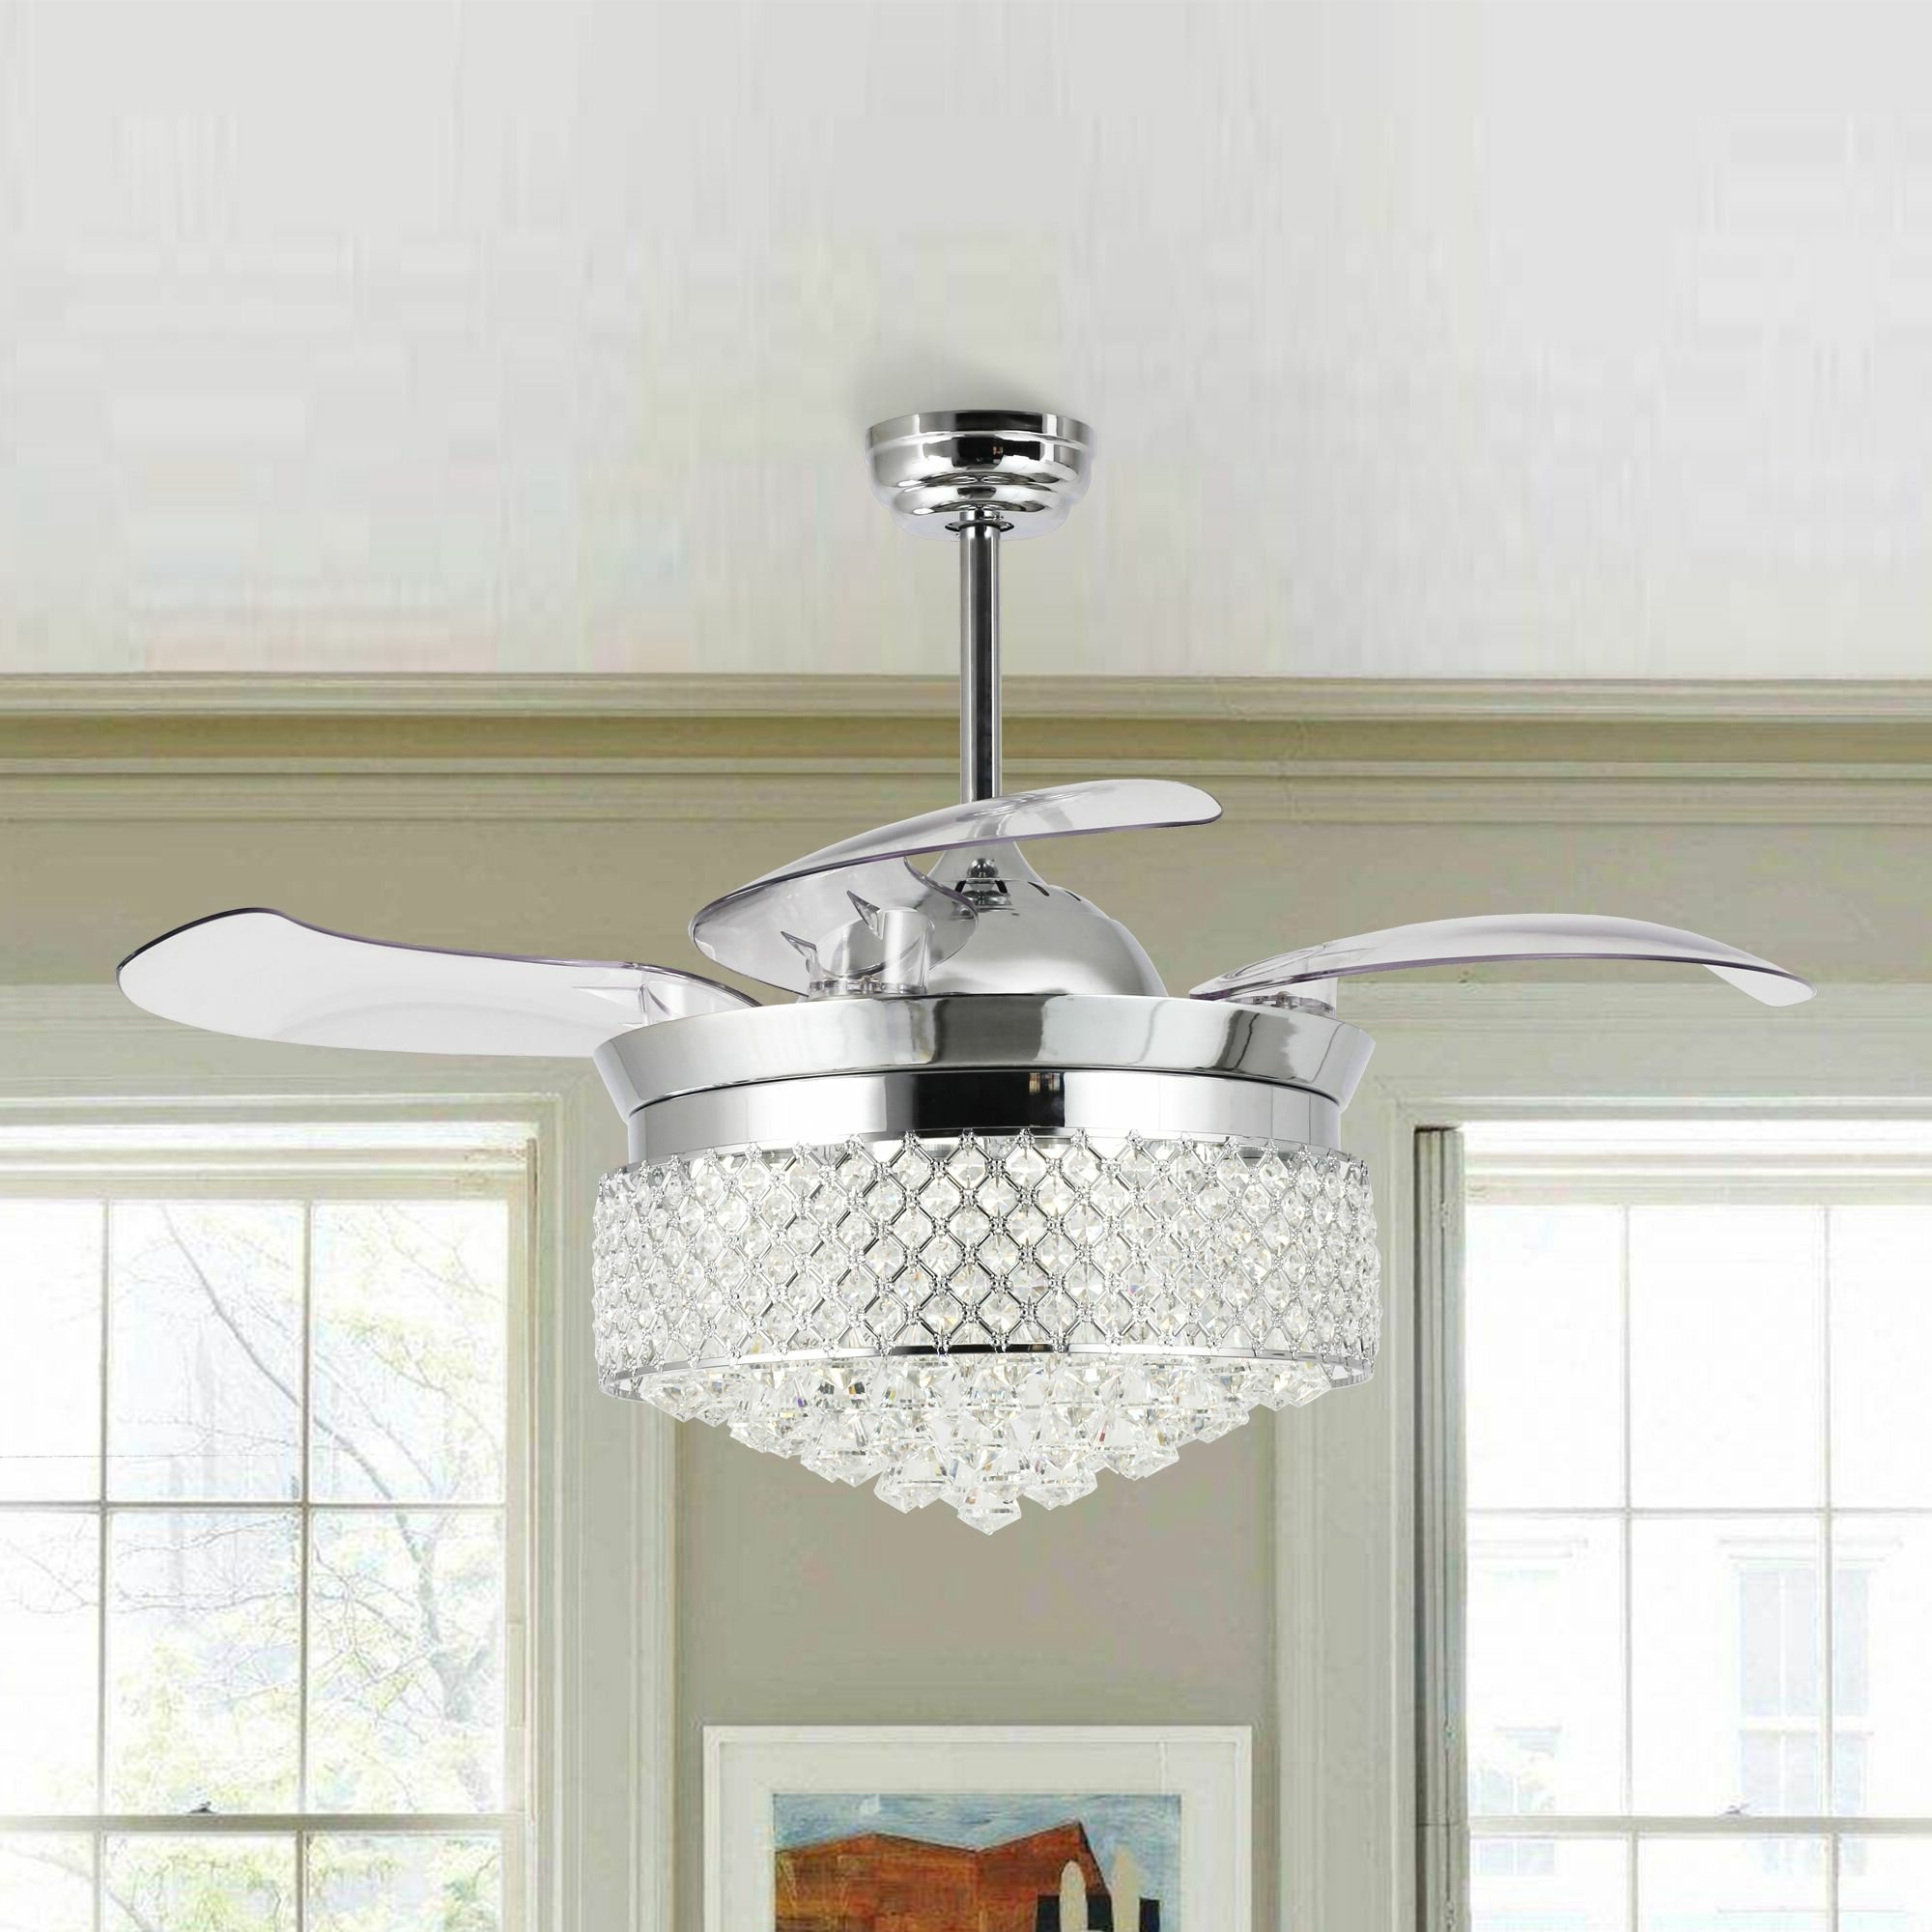 Famous Marcoux Modern Crystal Foldable 4 Blade Led Ceiling Fan With Remote, Light Kit Included Inside Marcoux 5 Blade Ceiling Fans (View 15 of 20)